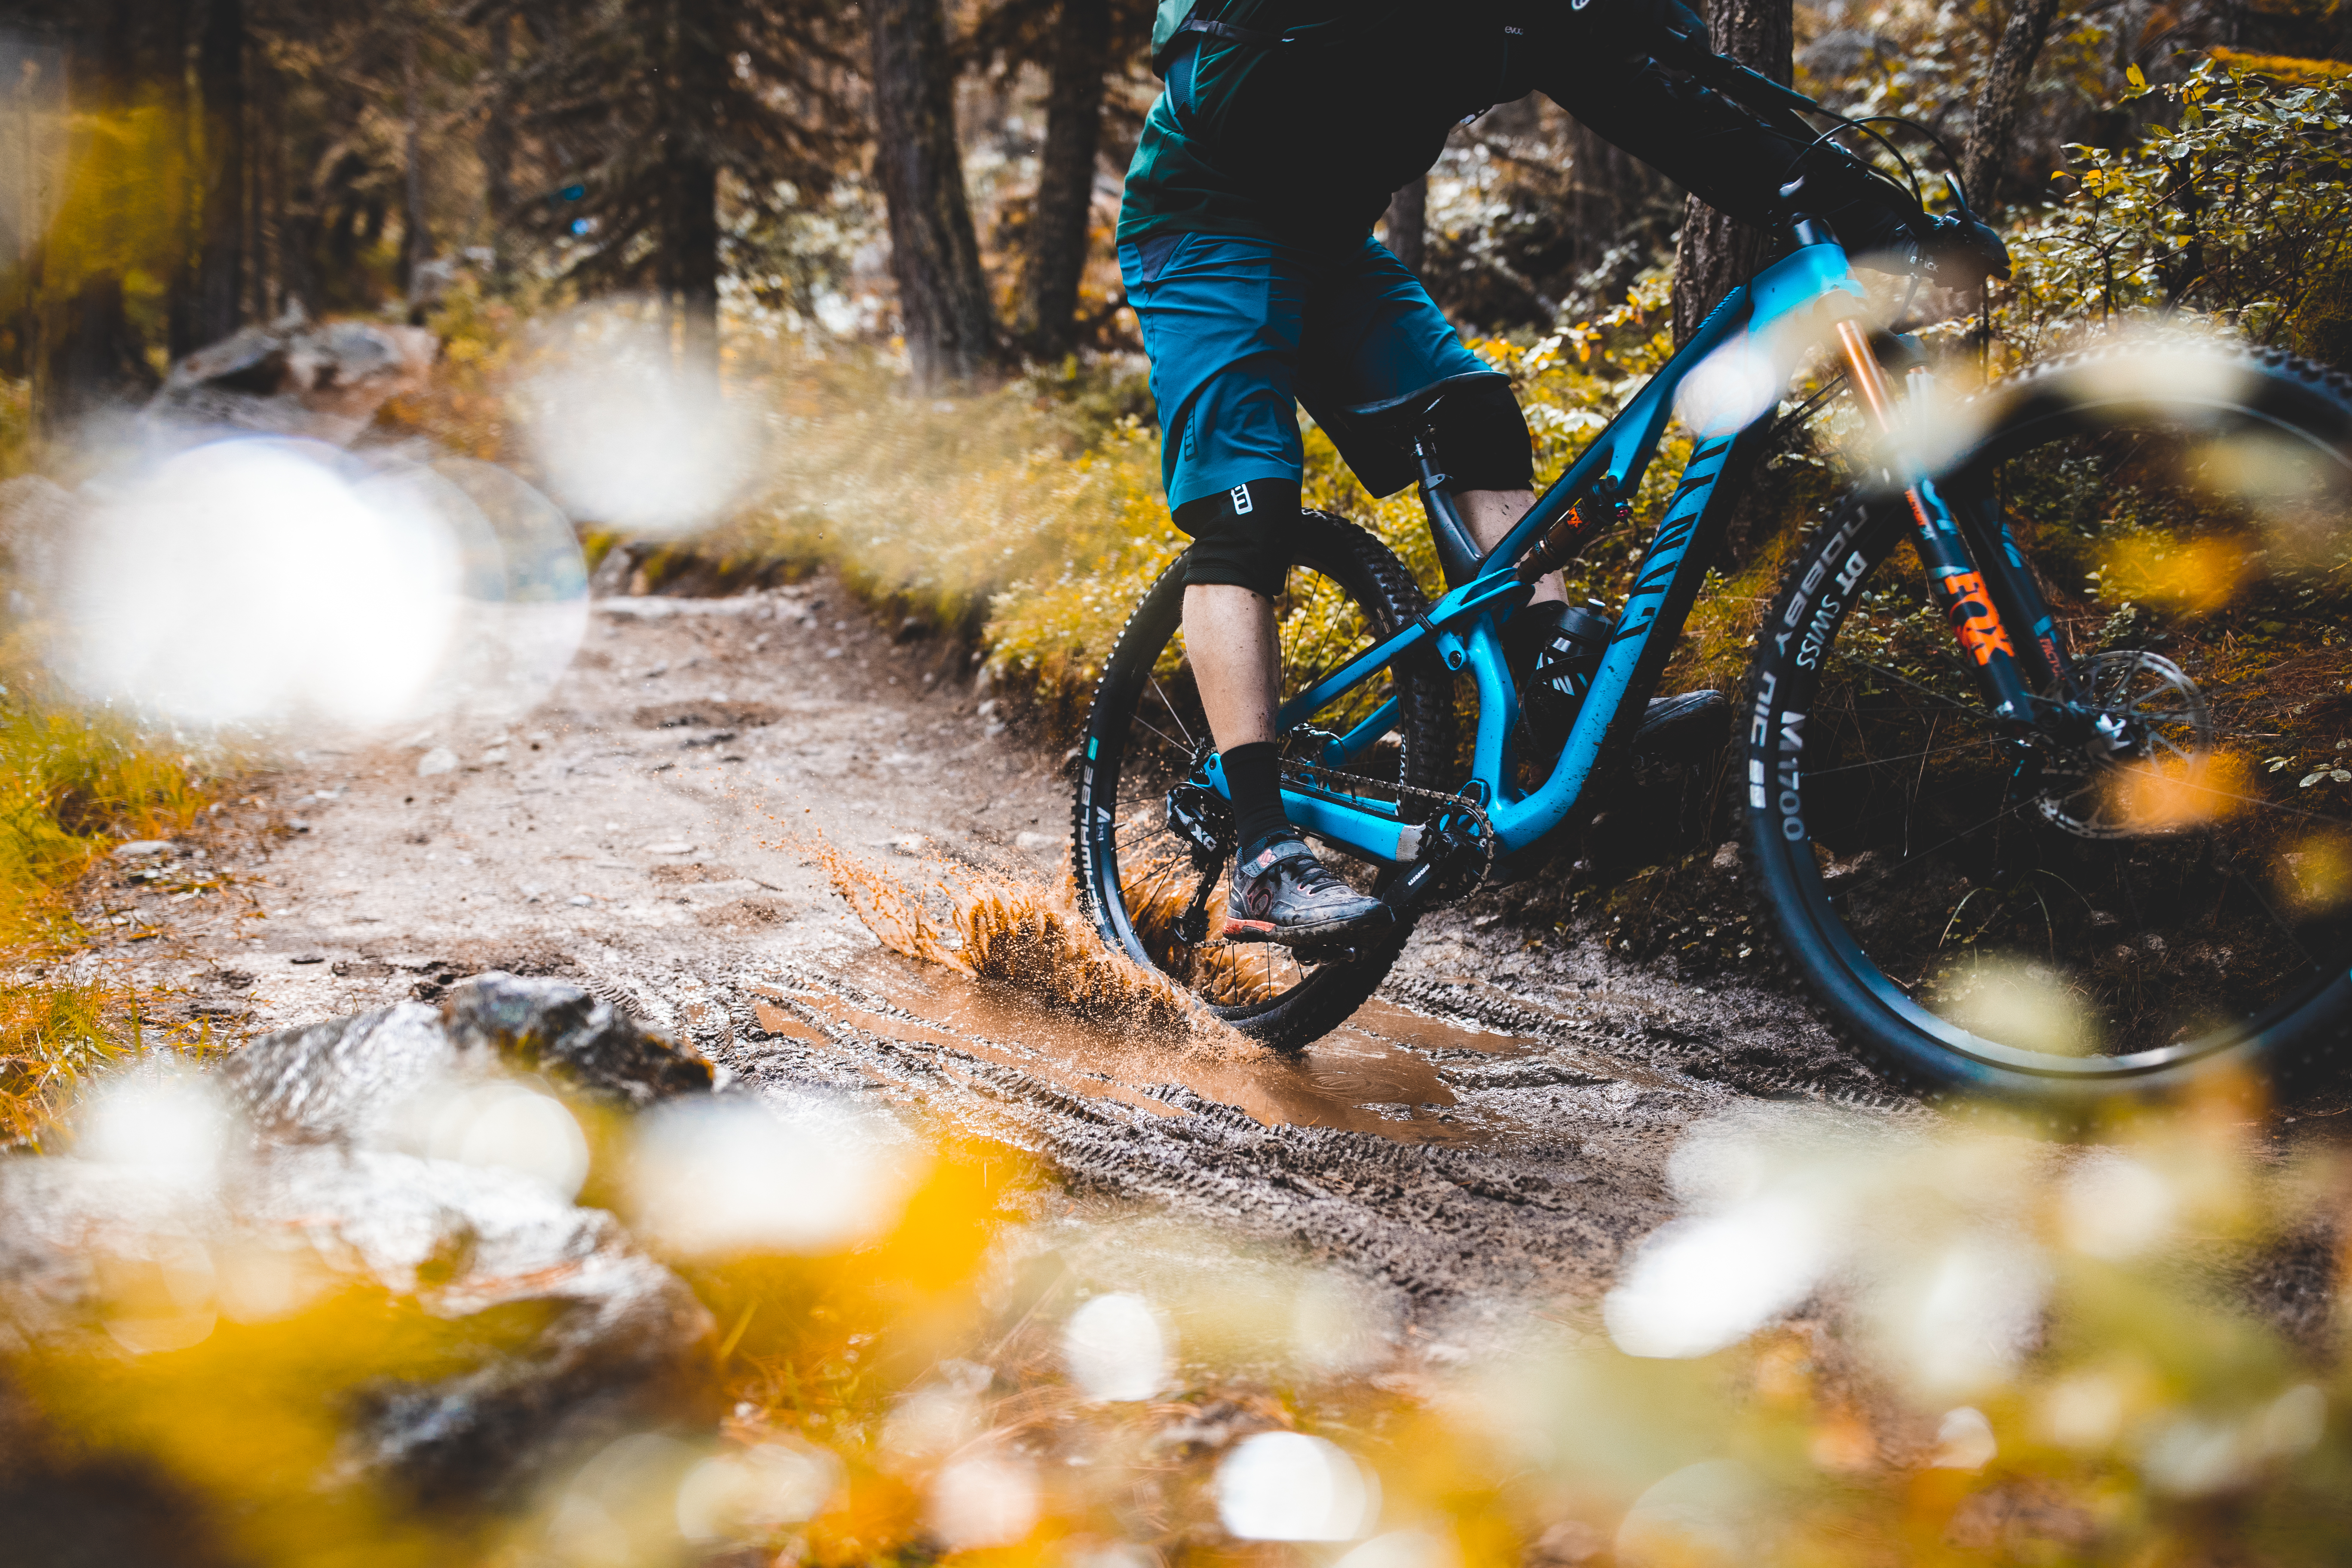 Canyon Updates the Neuron Trail Bike, Makes it Available in the US